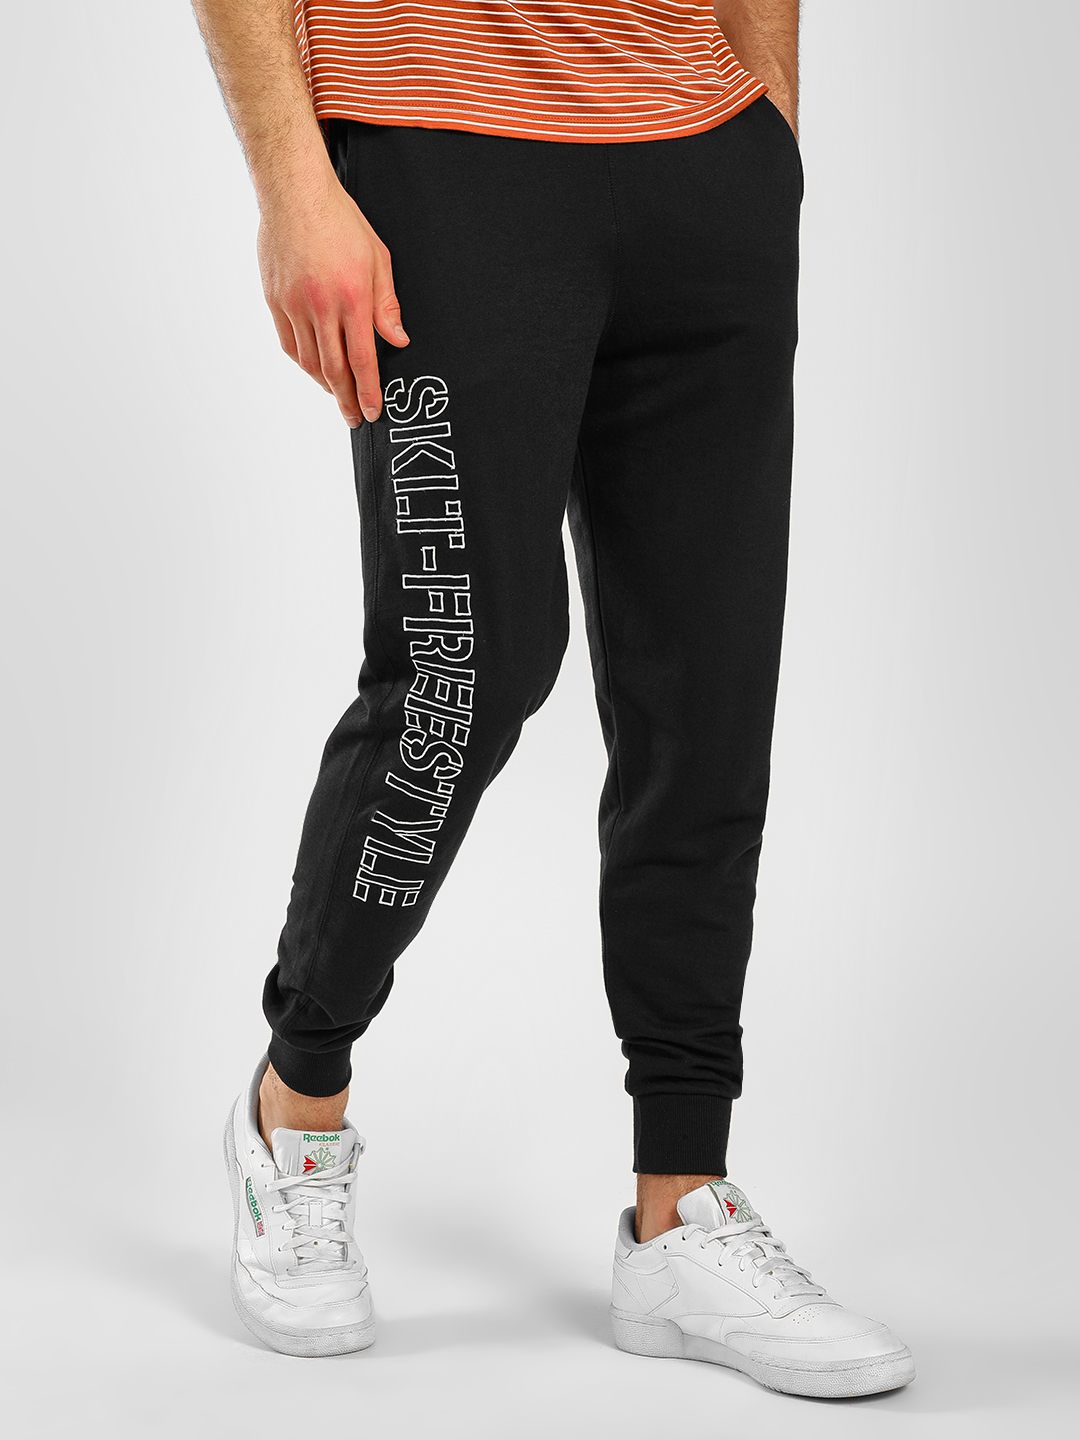 SKULT By Shahid Kapoor Black Side Embroidered Text Joggers 1